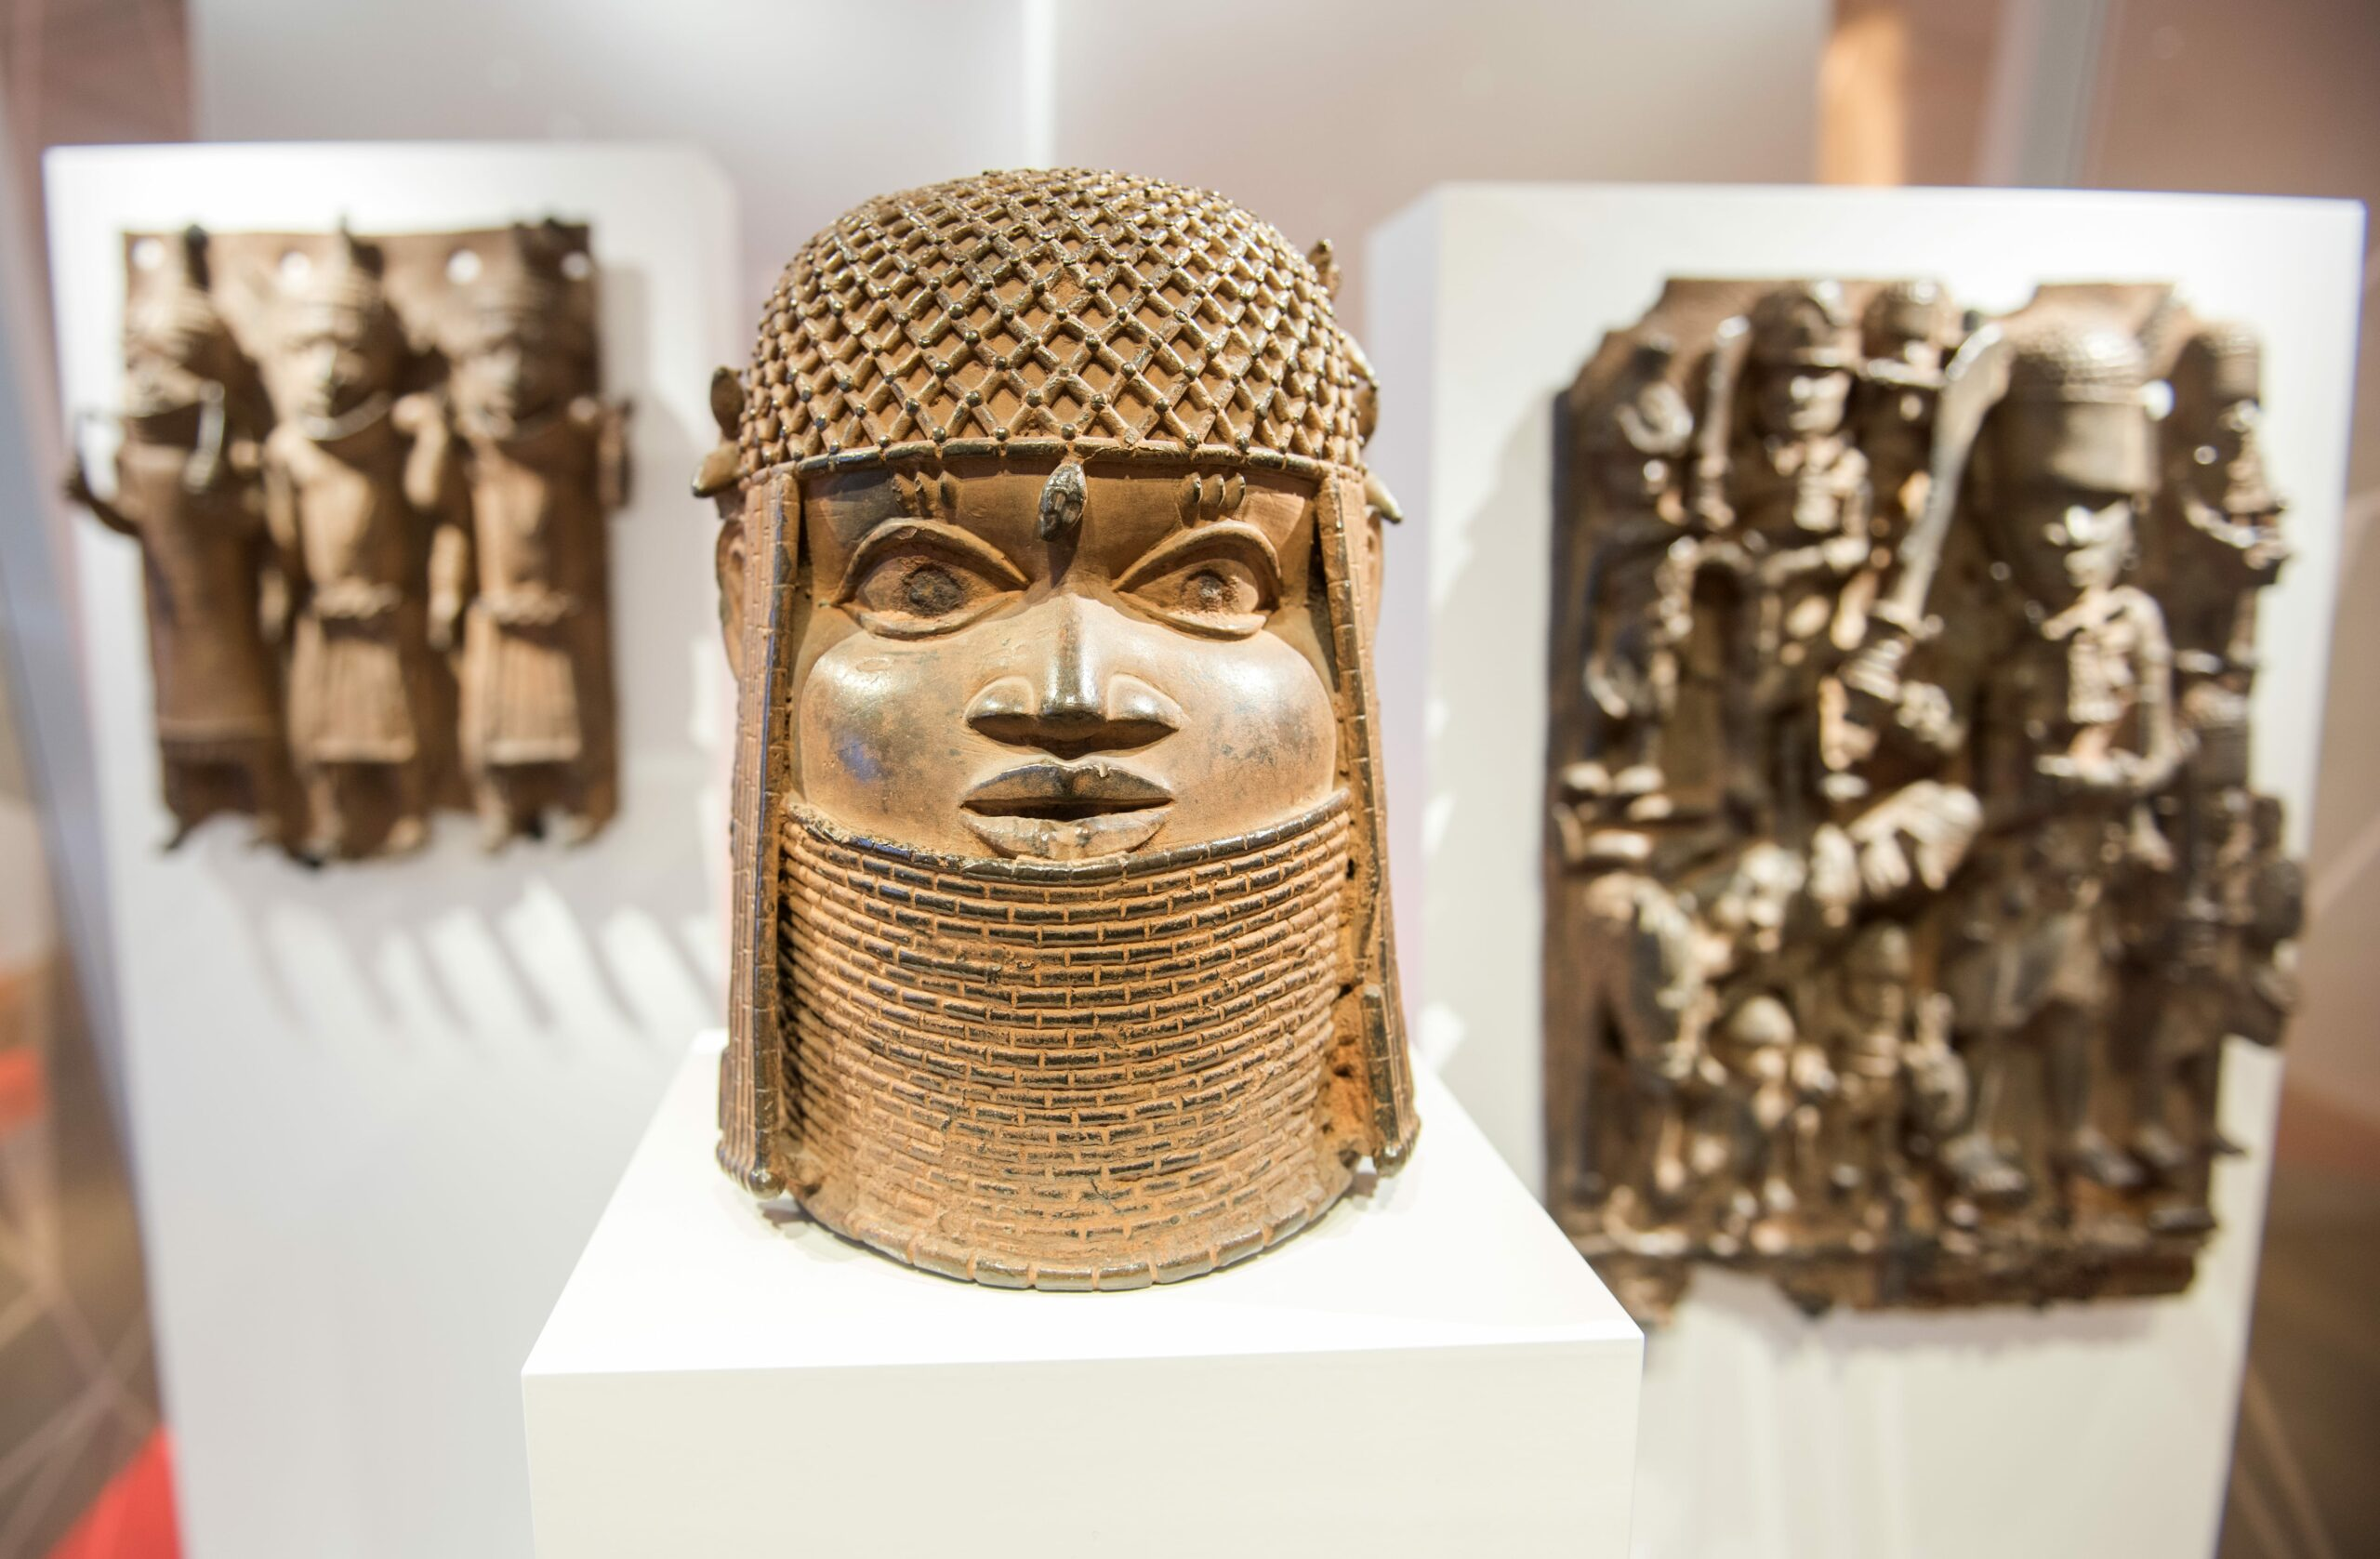 Germany Plans to Return Over 1,000 Benin Bronzes to Nigeria in 2022